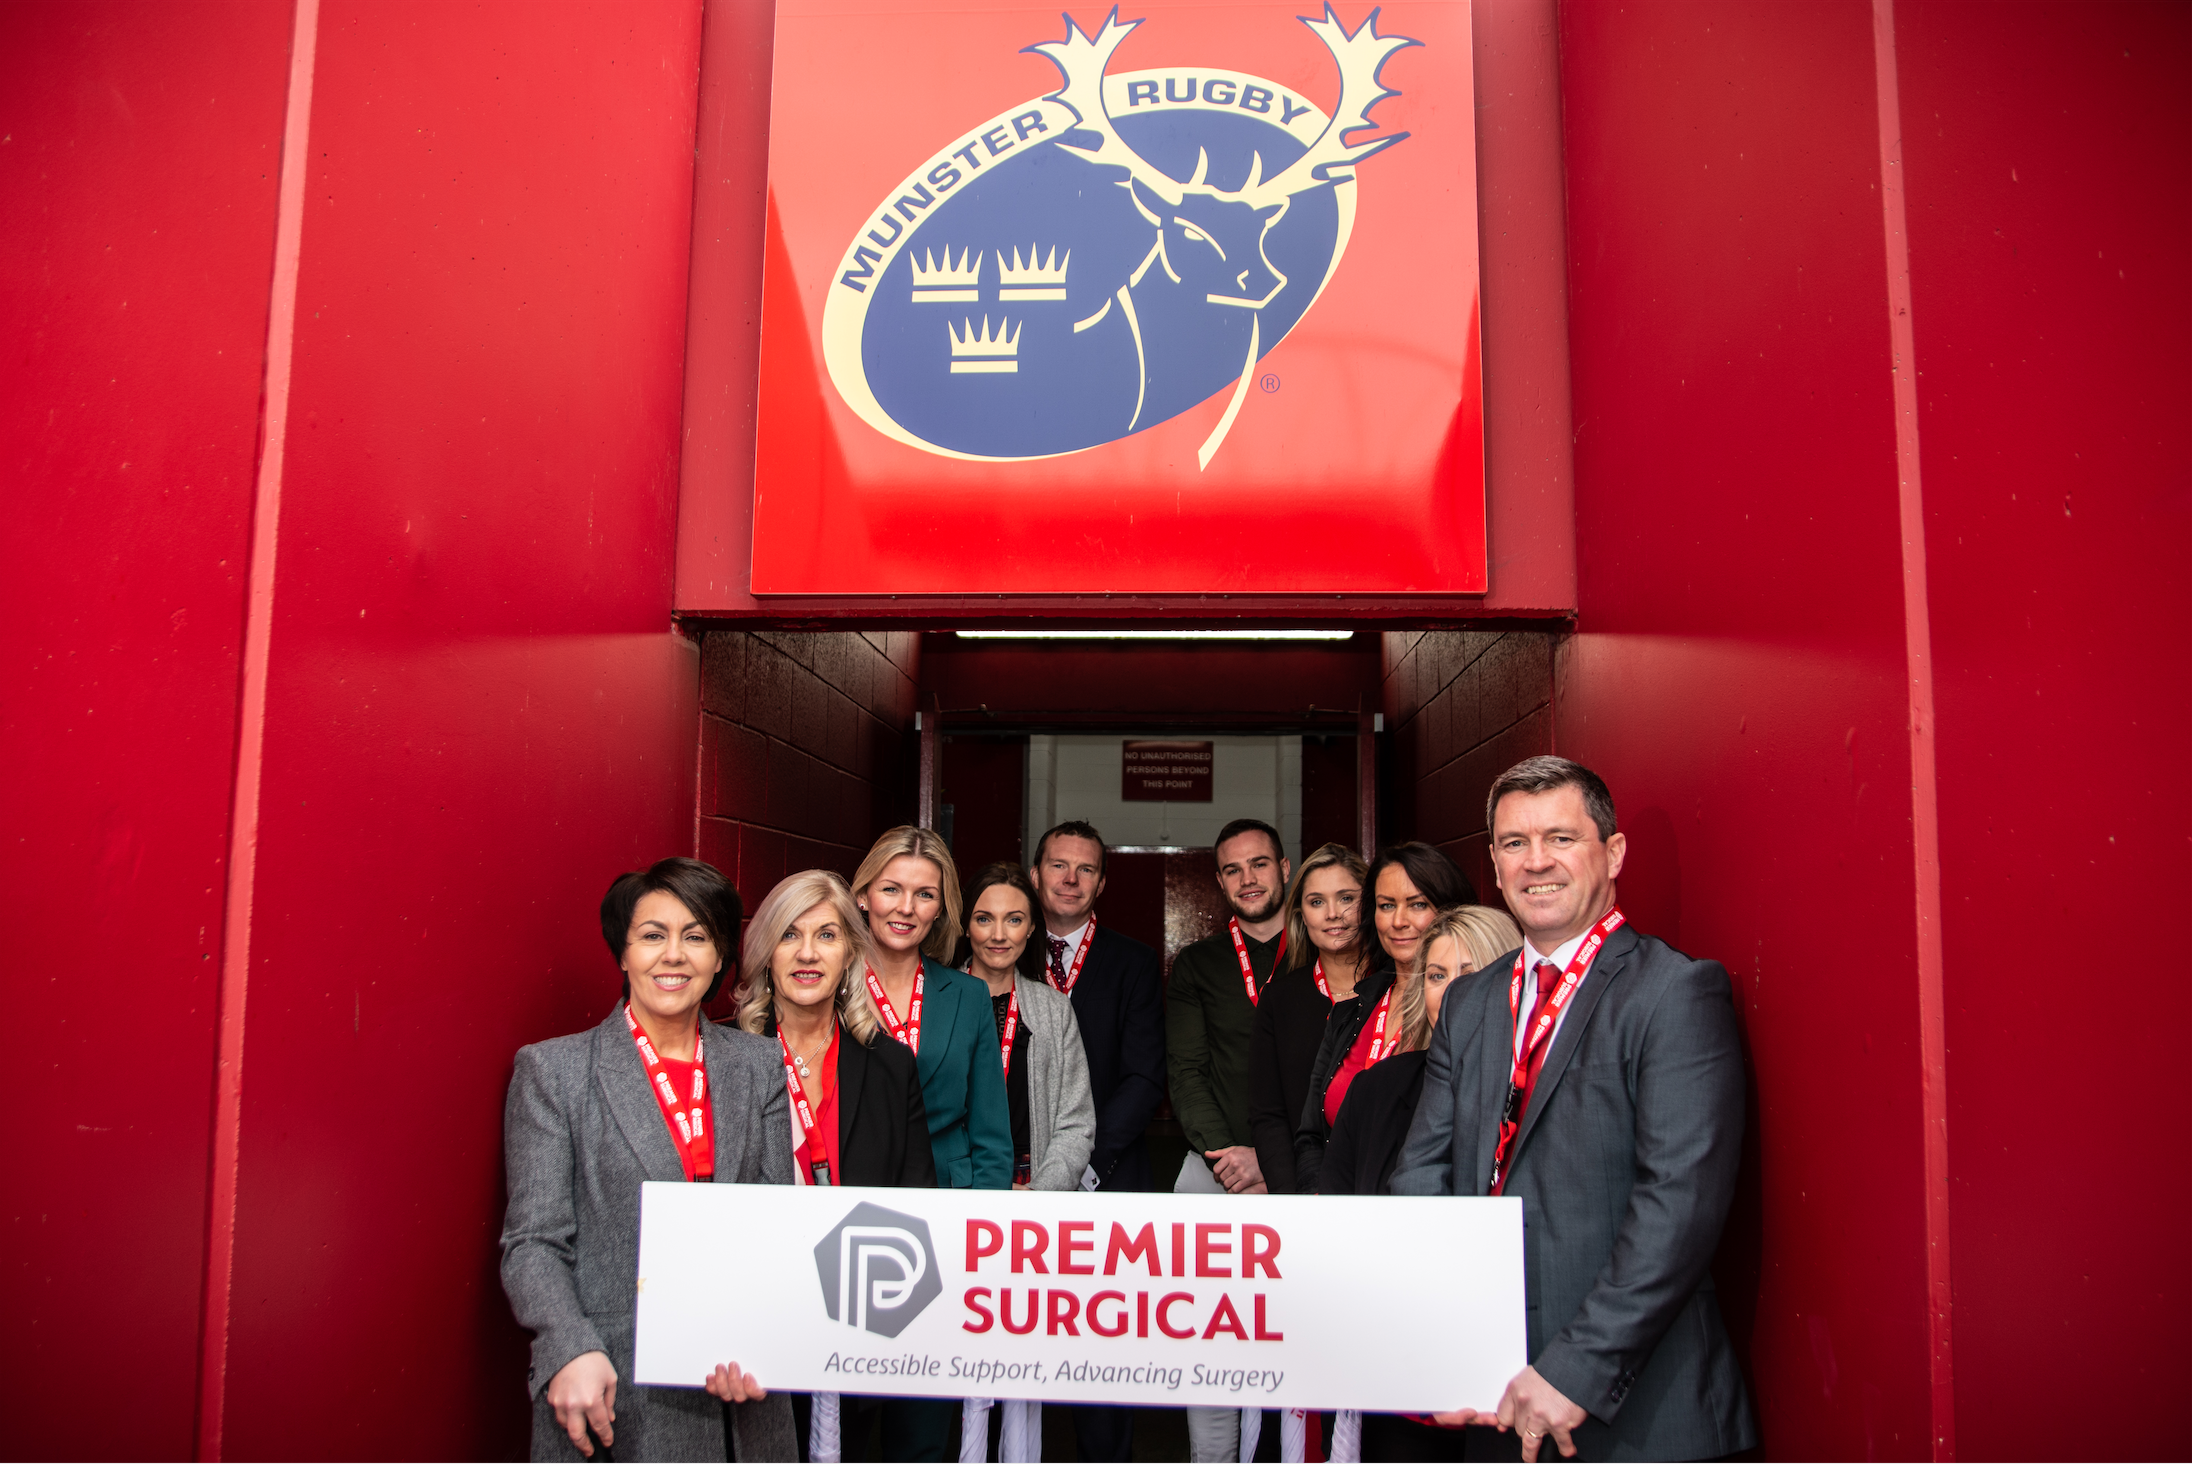 Premier Surgical Brand Launch